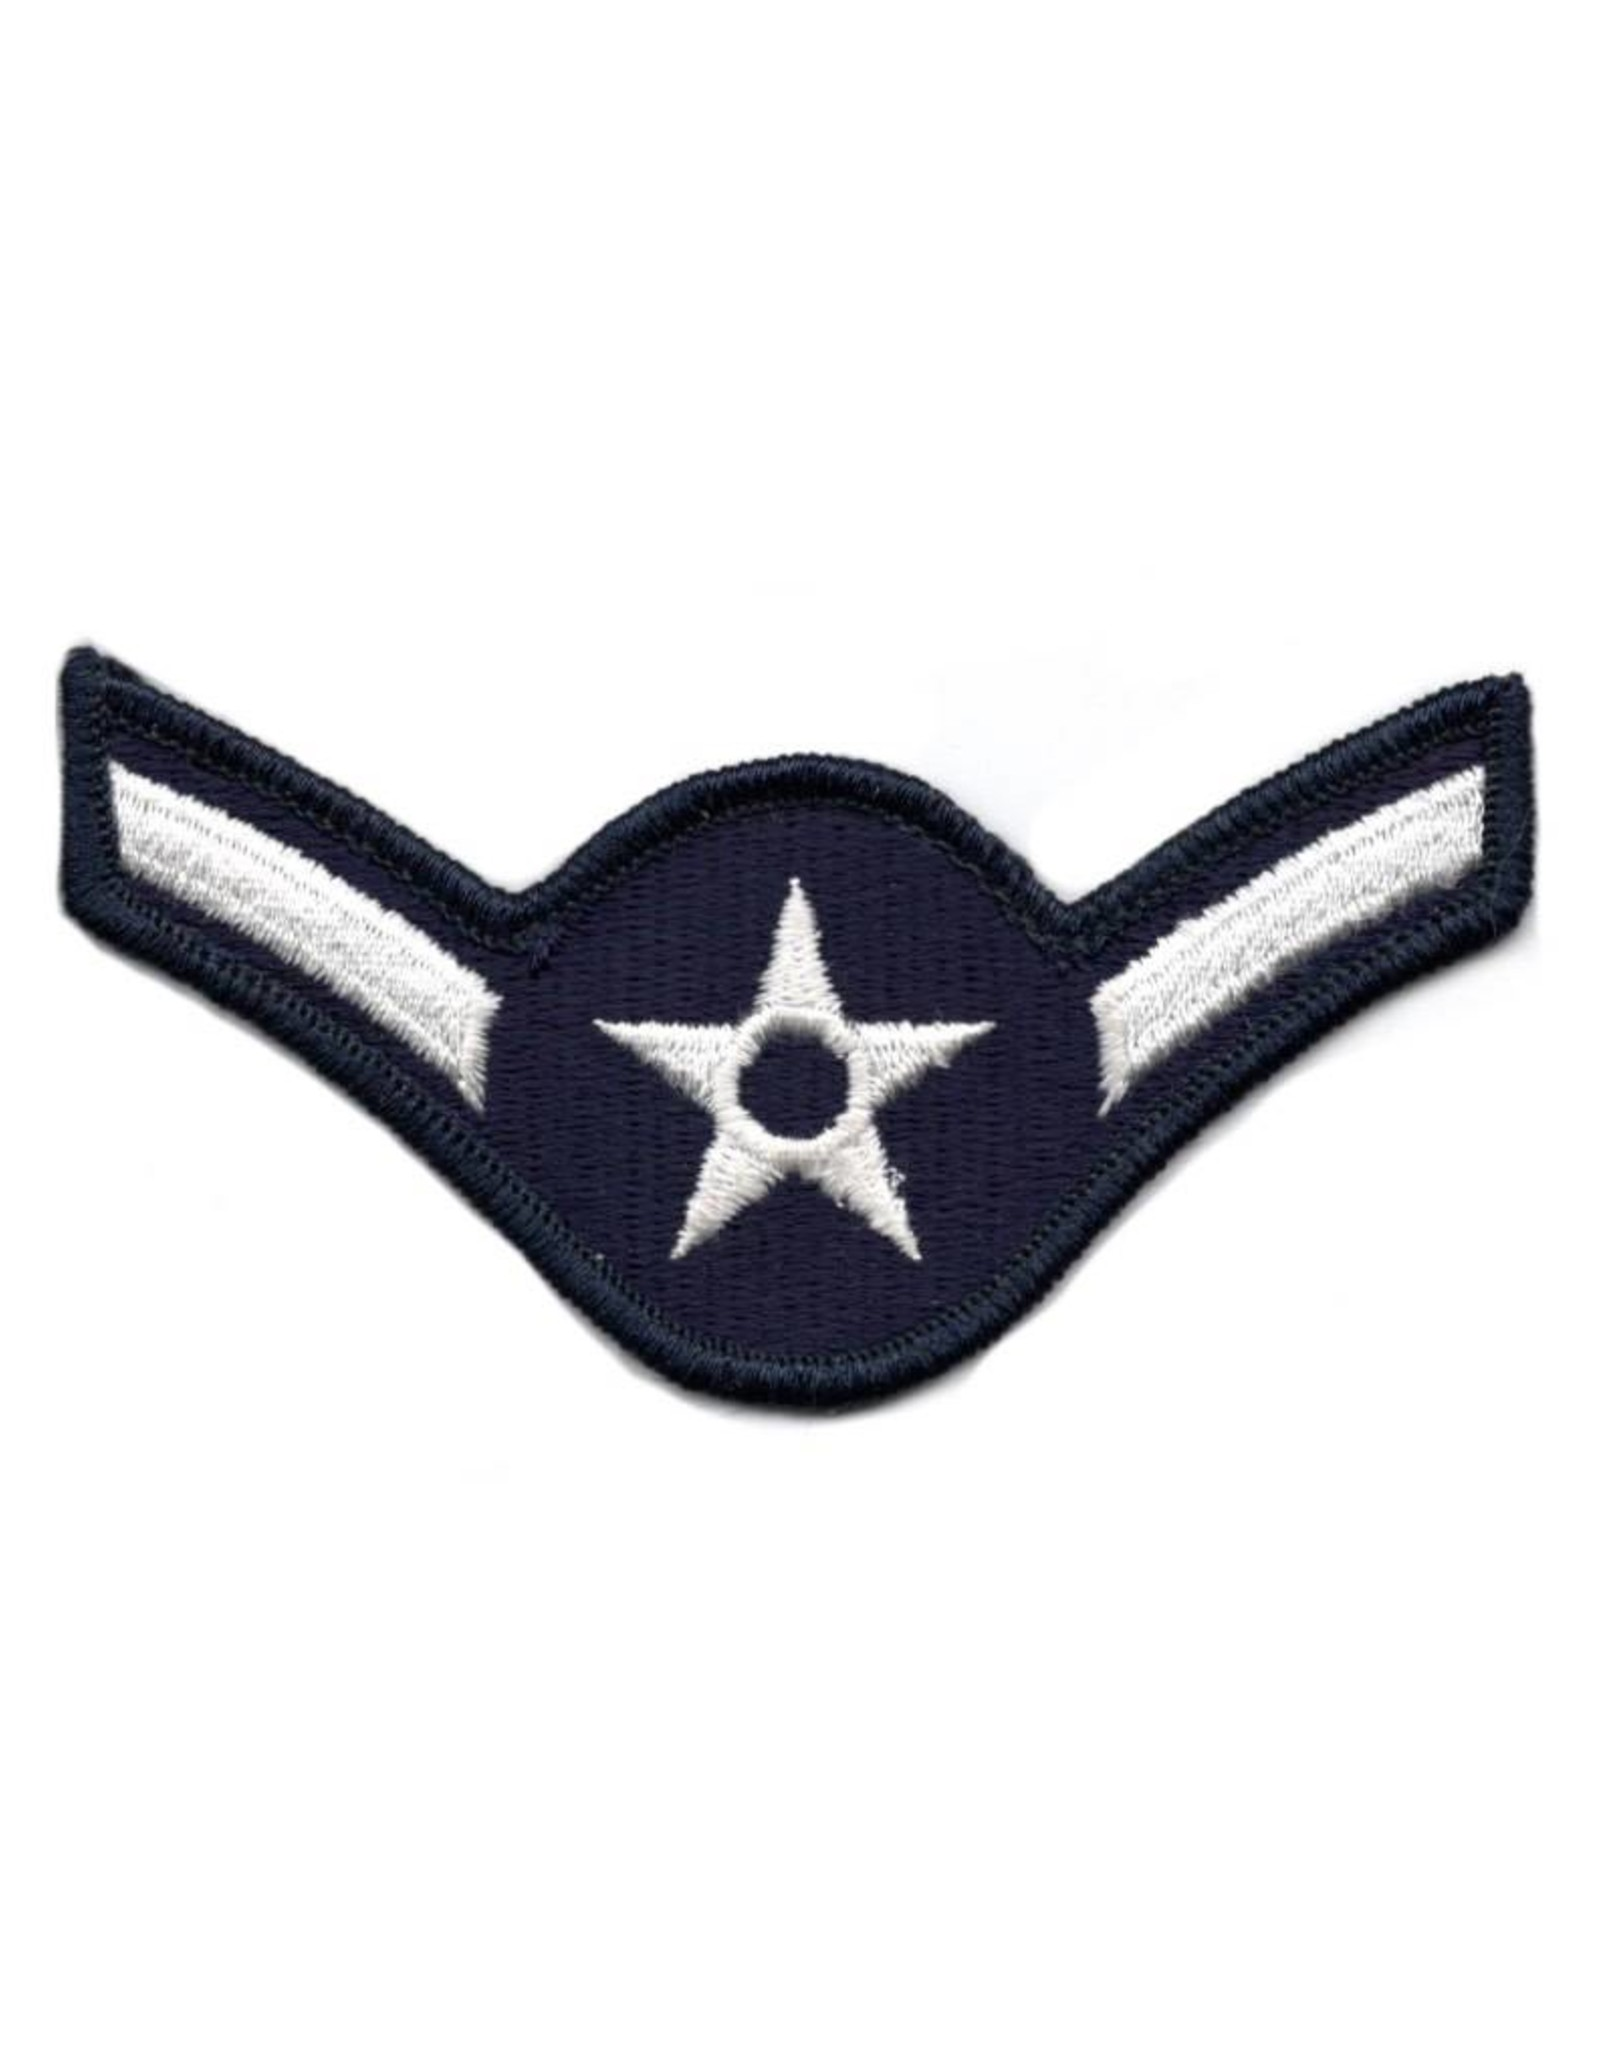 """MidMil Embroidered Air Force Airman (E-2) Rank Patch 4"""" wide x 2.2"""" high"""